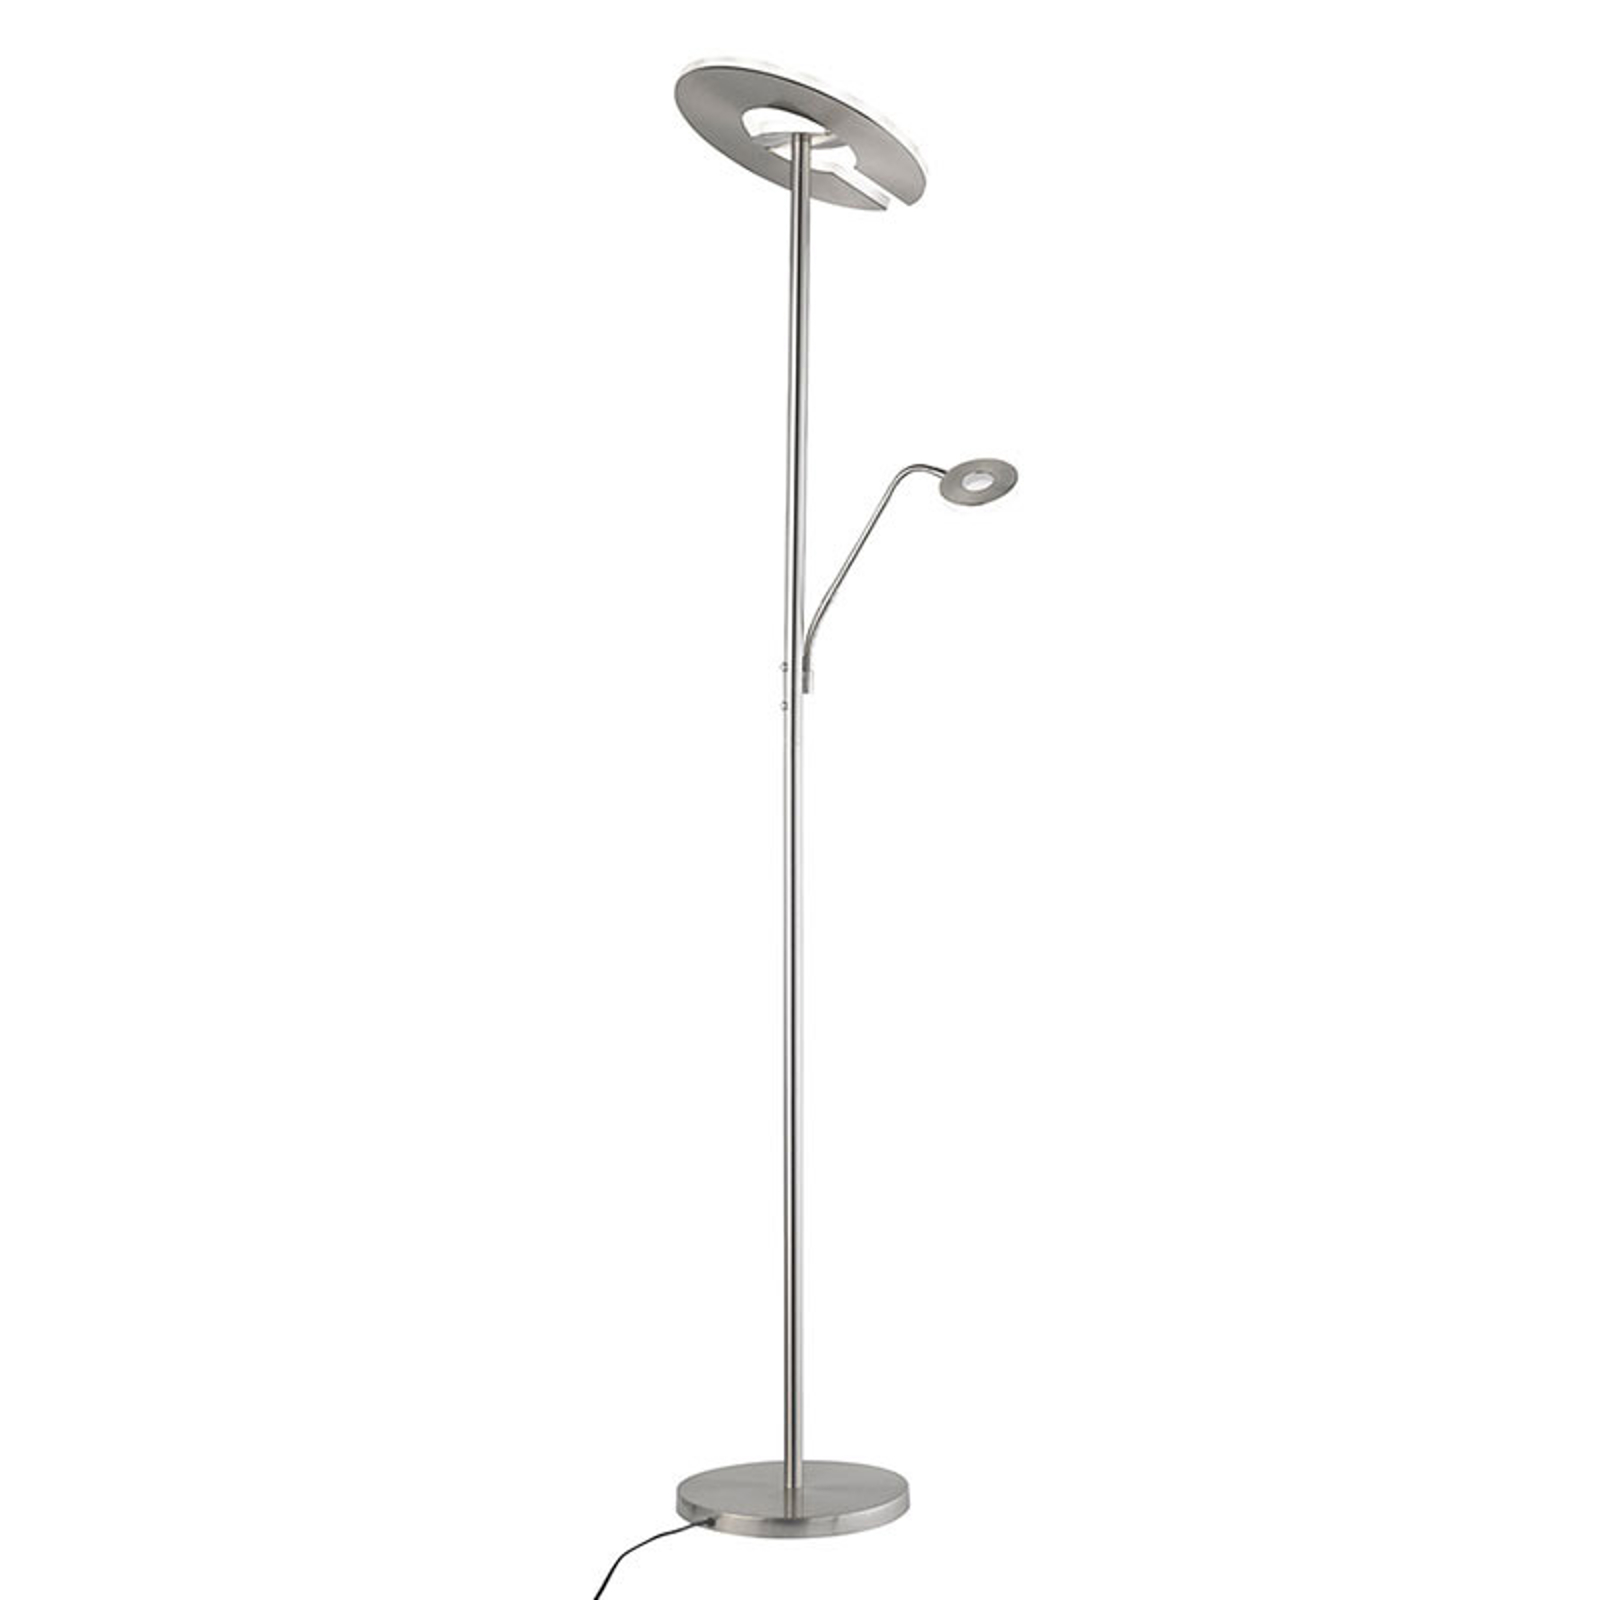 Lampadaire indirect LED Dent liseuse, CCT, nickel